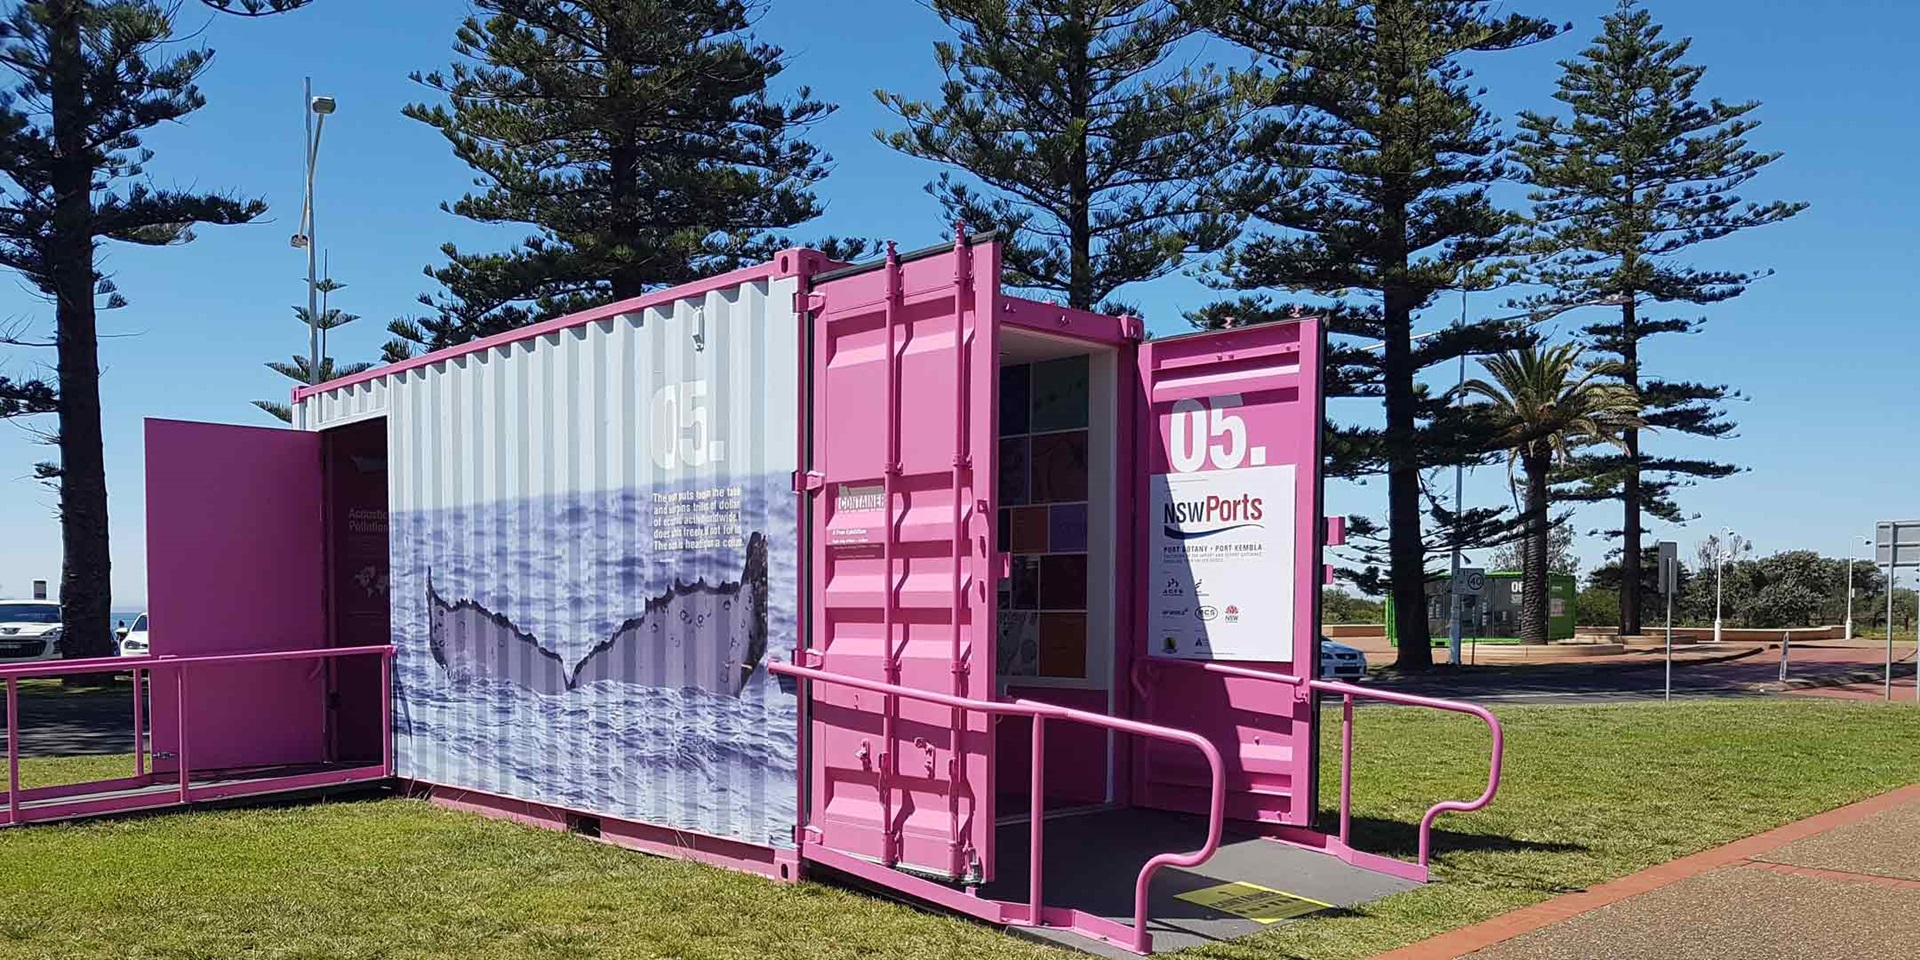 Container On Tour, Wollongong NSW